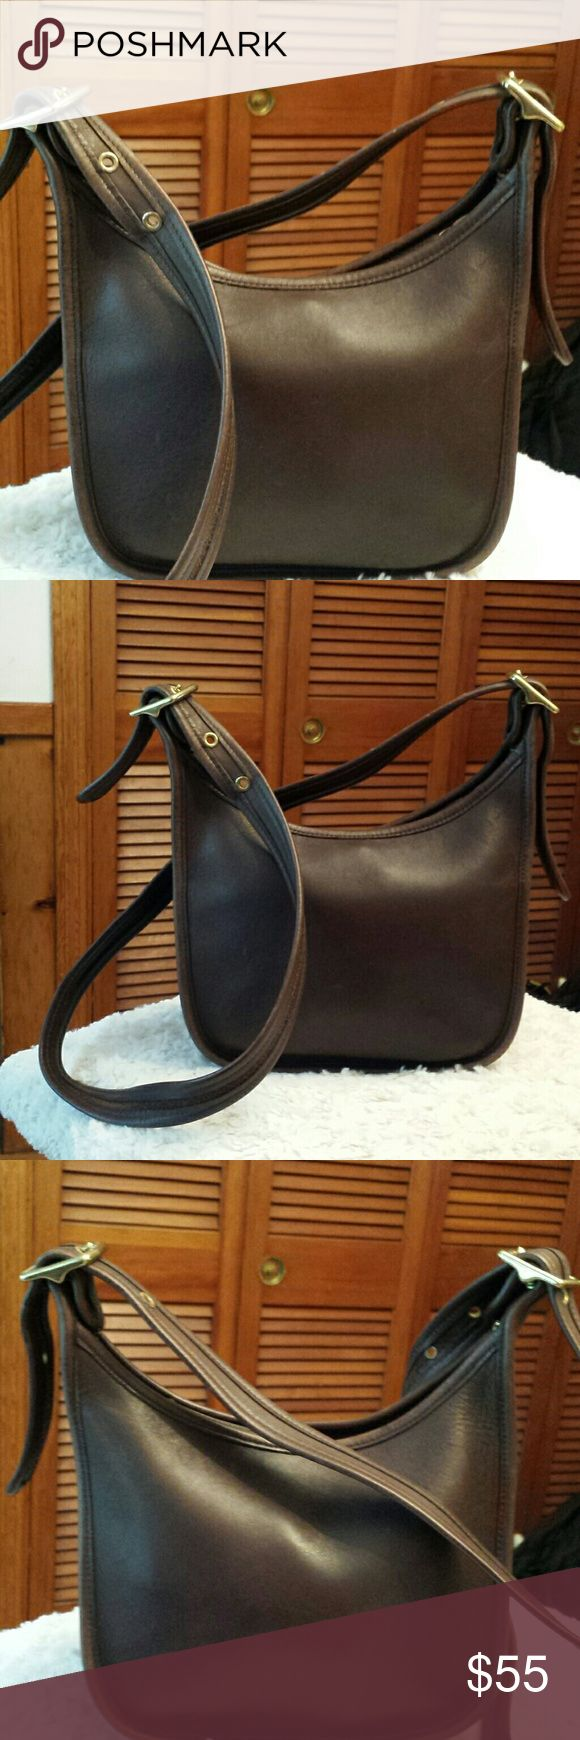 Coach Brown Leather Crossbody Bag Coach Legacy Janice Brown Leather Crossbody Bag, Creed 9950, Zippered Closure, Slip pocket inside, some wear on edges and marks on leather, no tag Coach  Bags Crossbody Bags